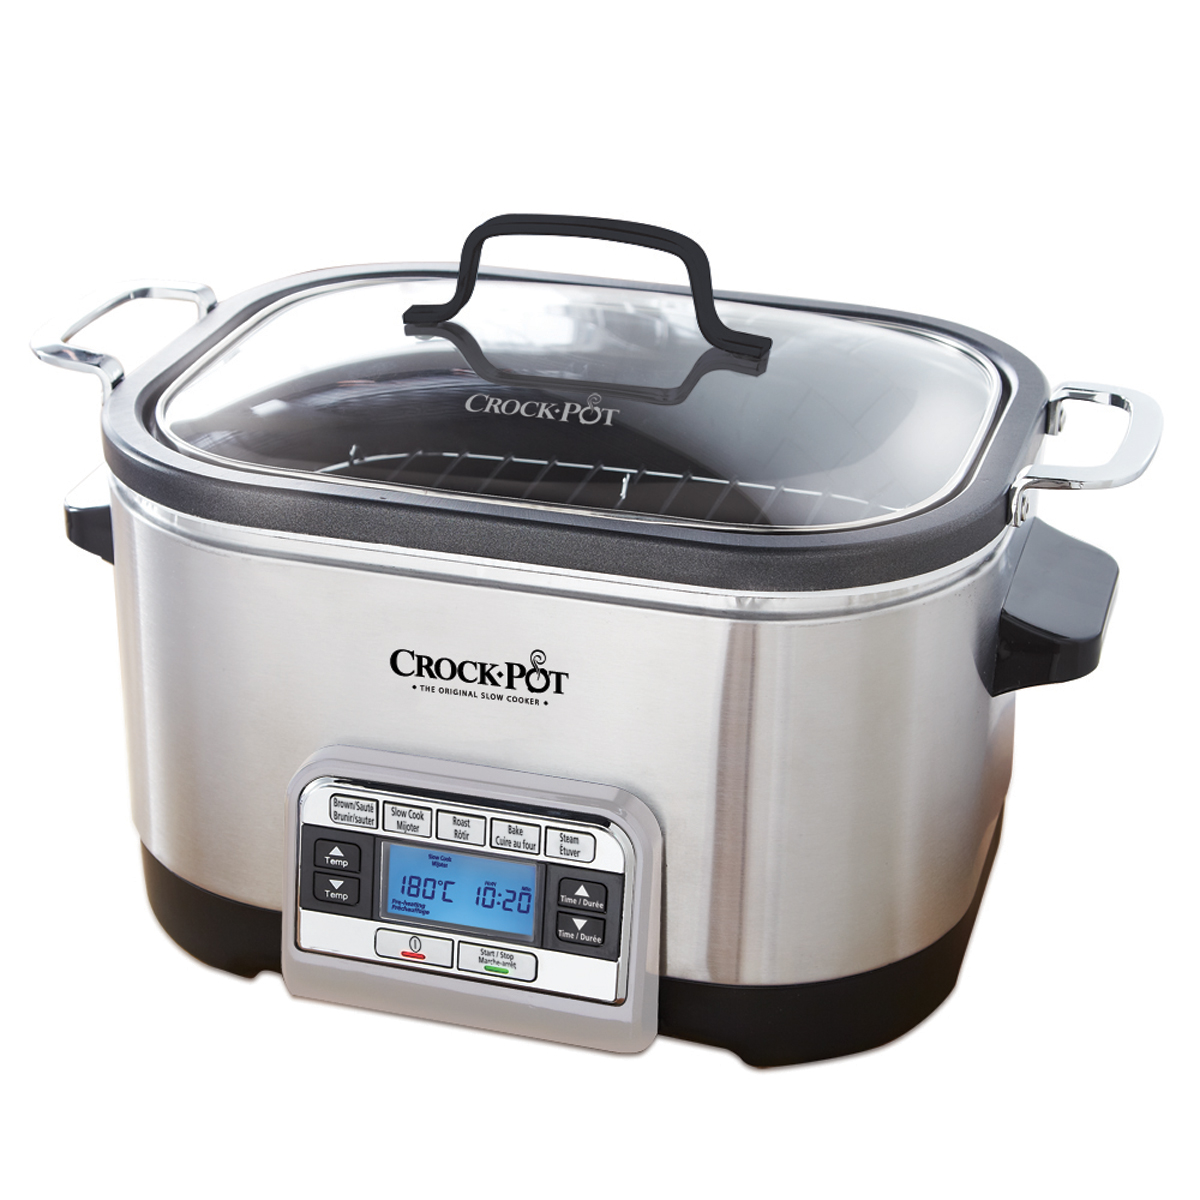 Crock-Pot® 5-in-1 Multi-Cooker in Stainless Steel by Crock-Pot